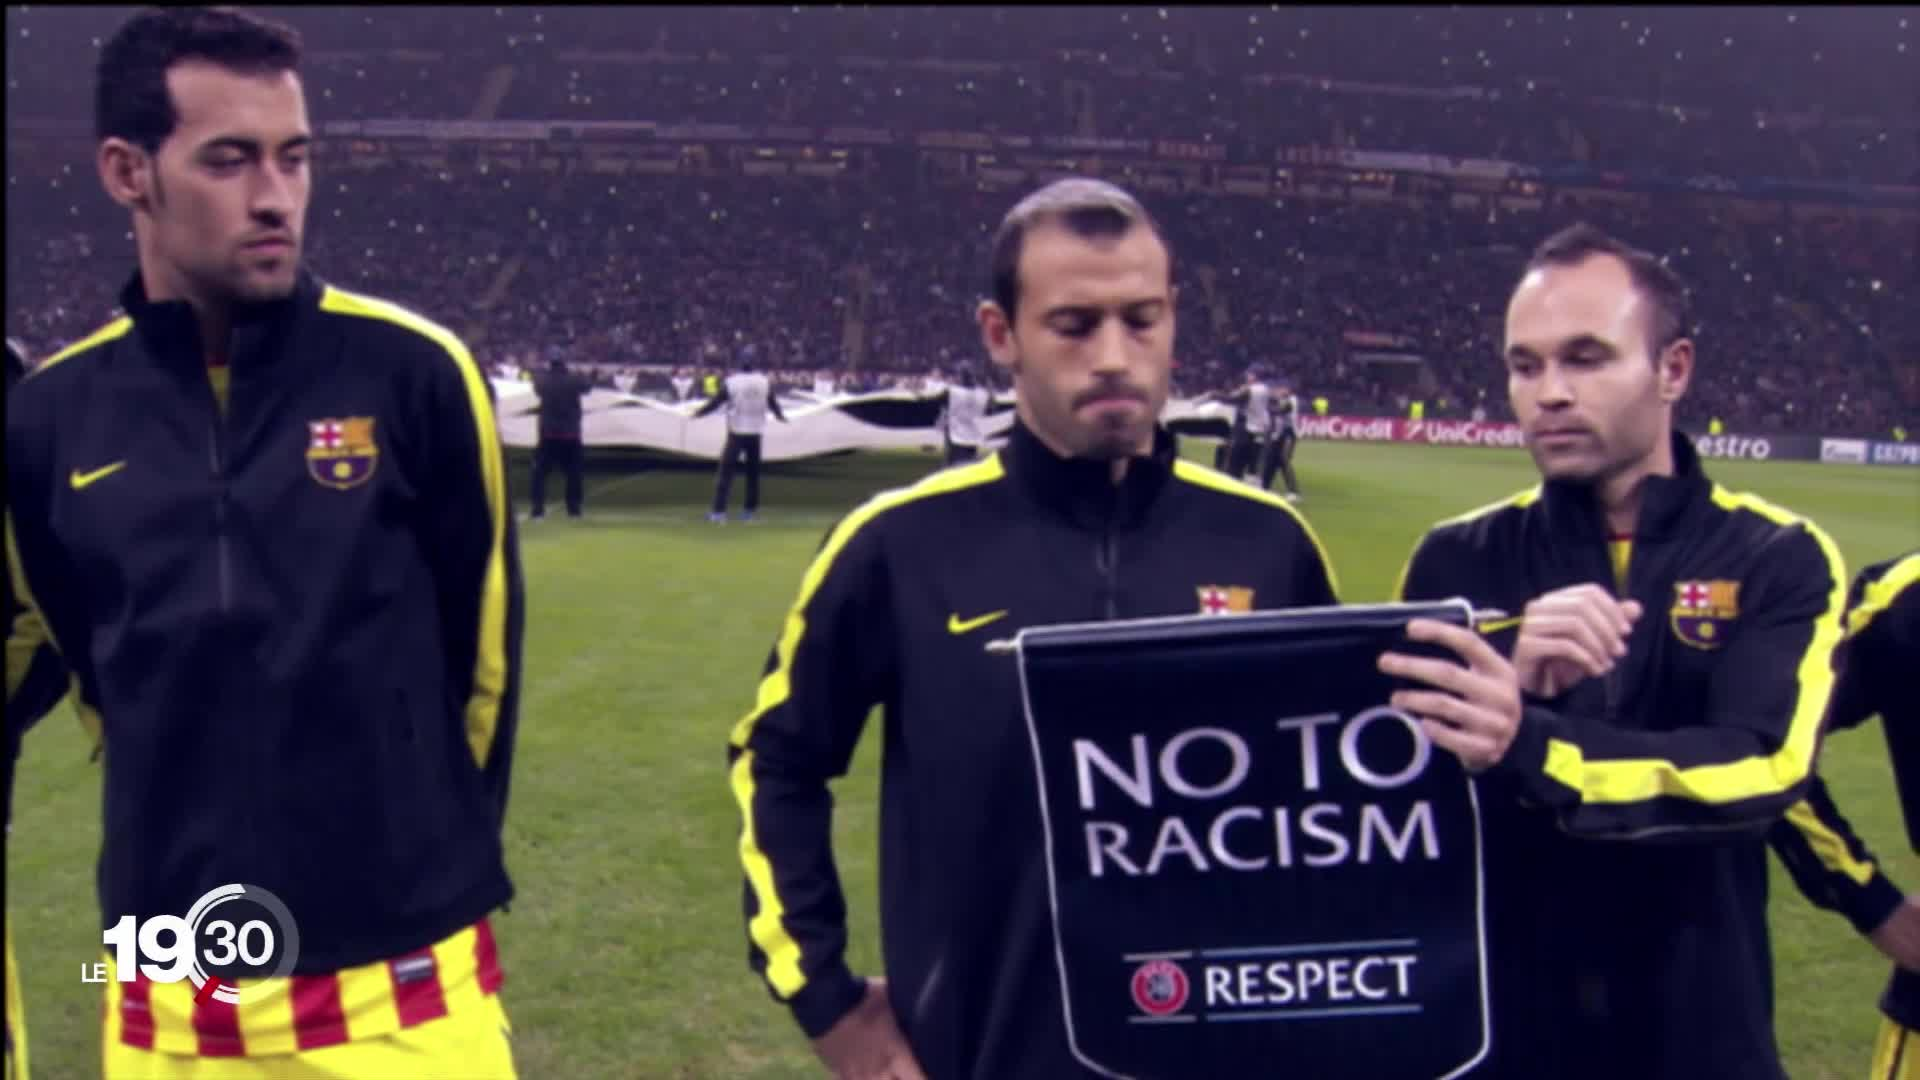 Racism continues to gangrene football matches